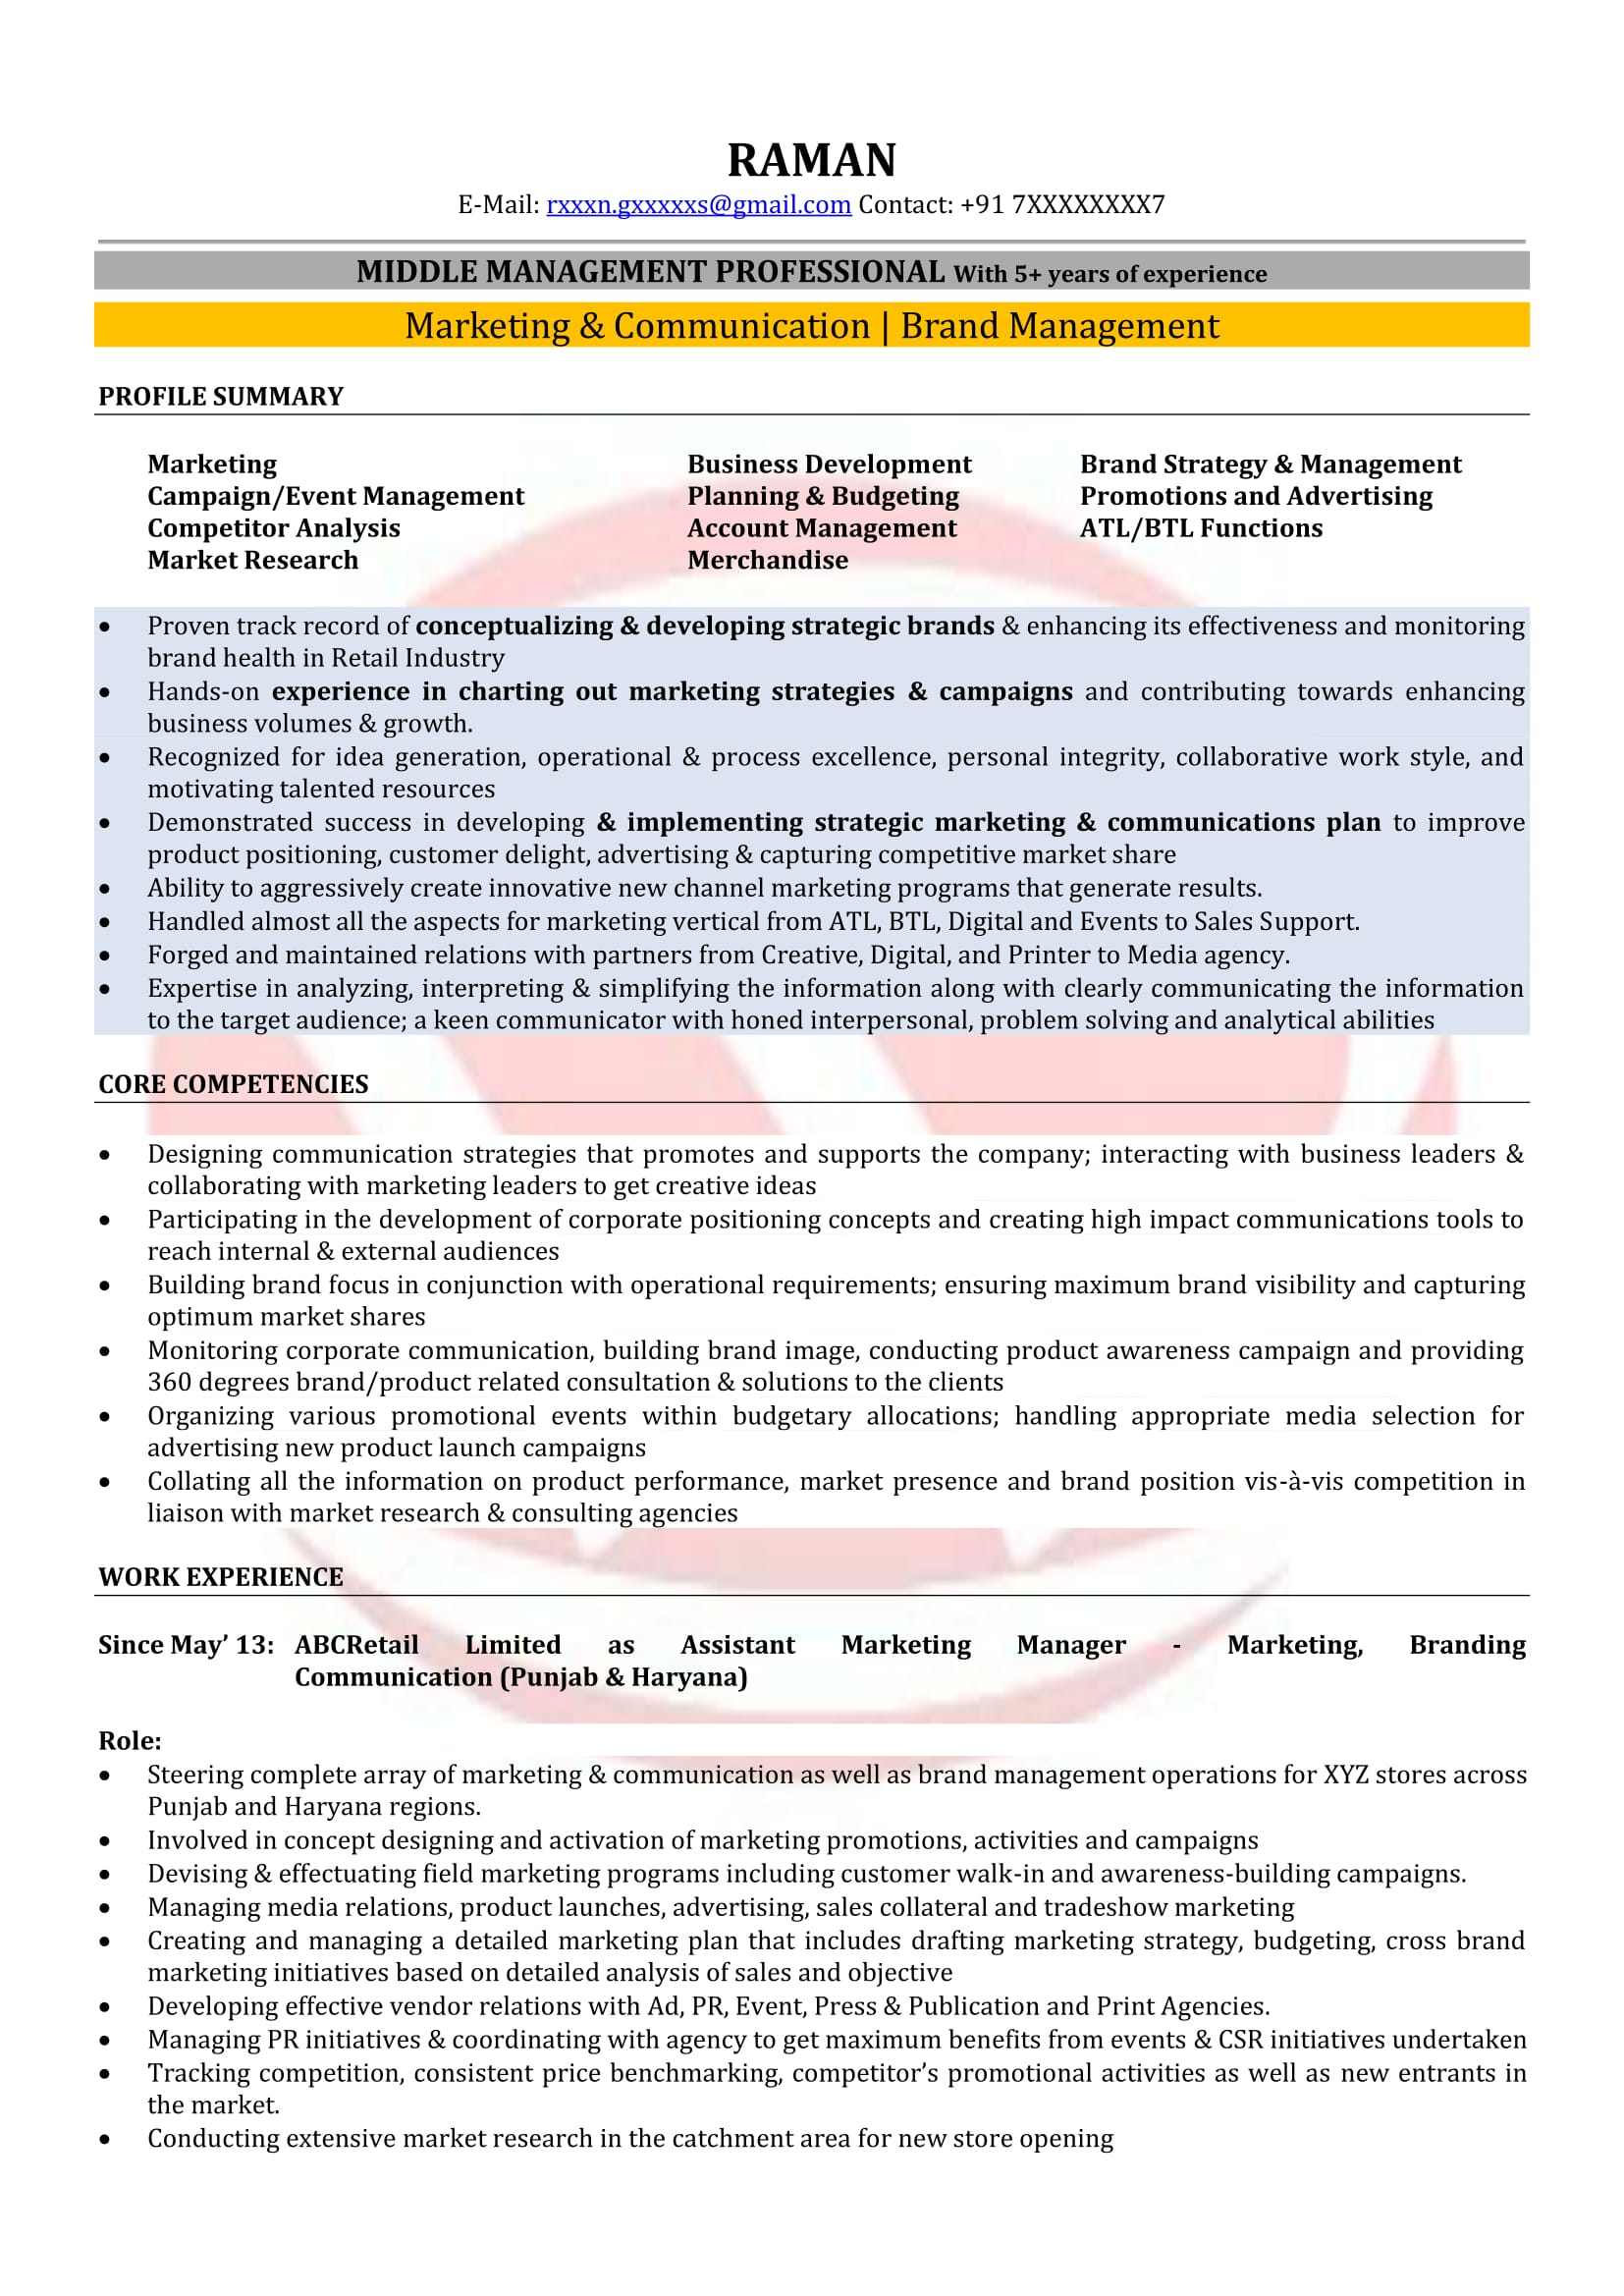 marketing manager sample resumes resume format templates for bpo voice process Resume Sample Resume For Bpo Voice Process Experienced